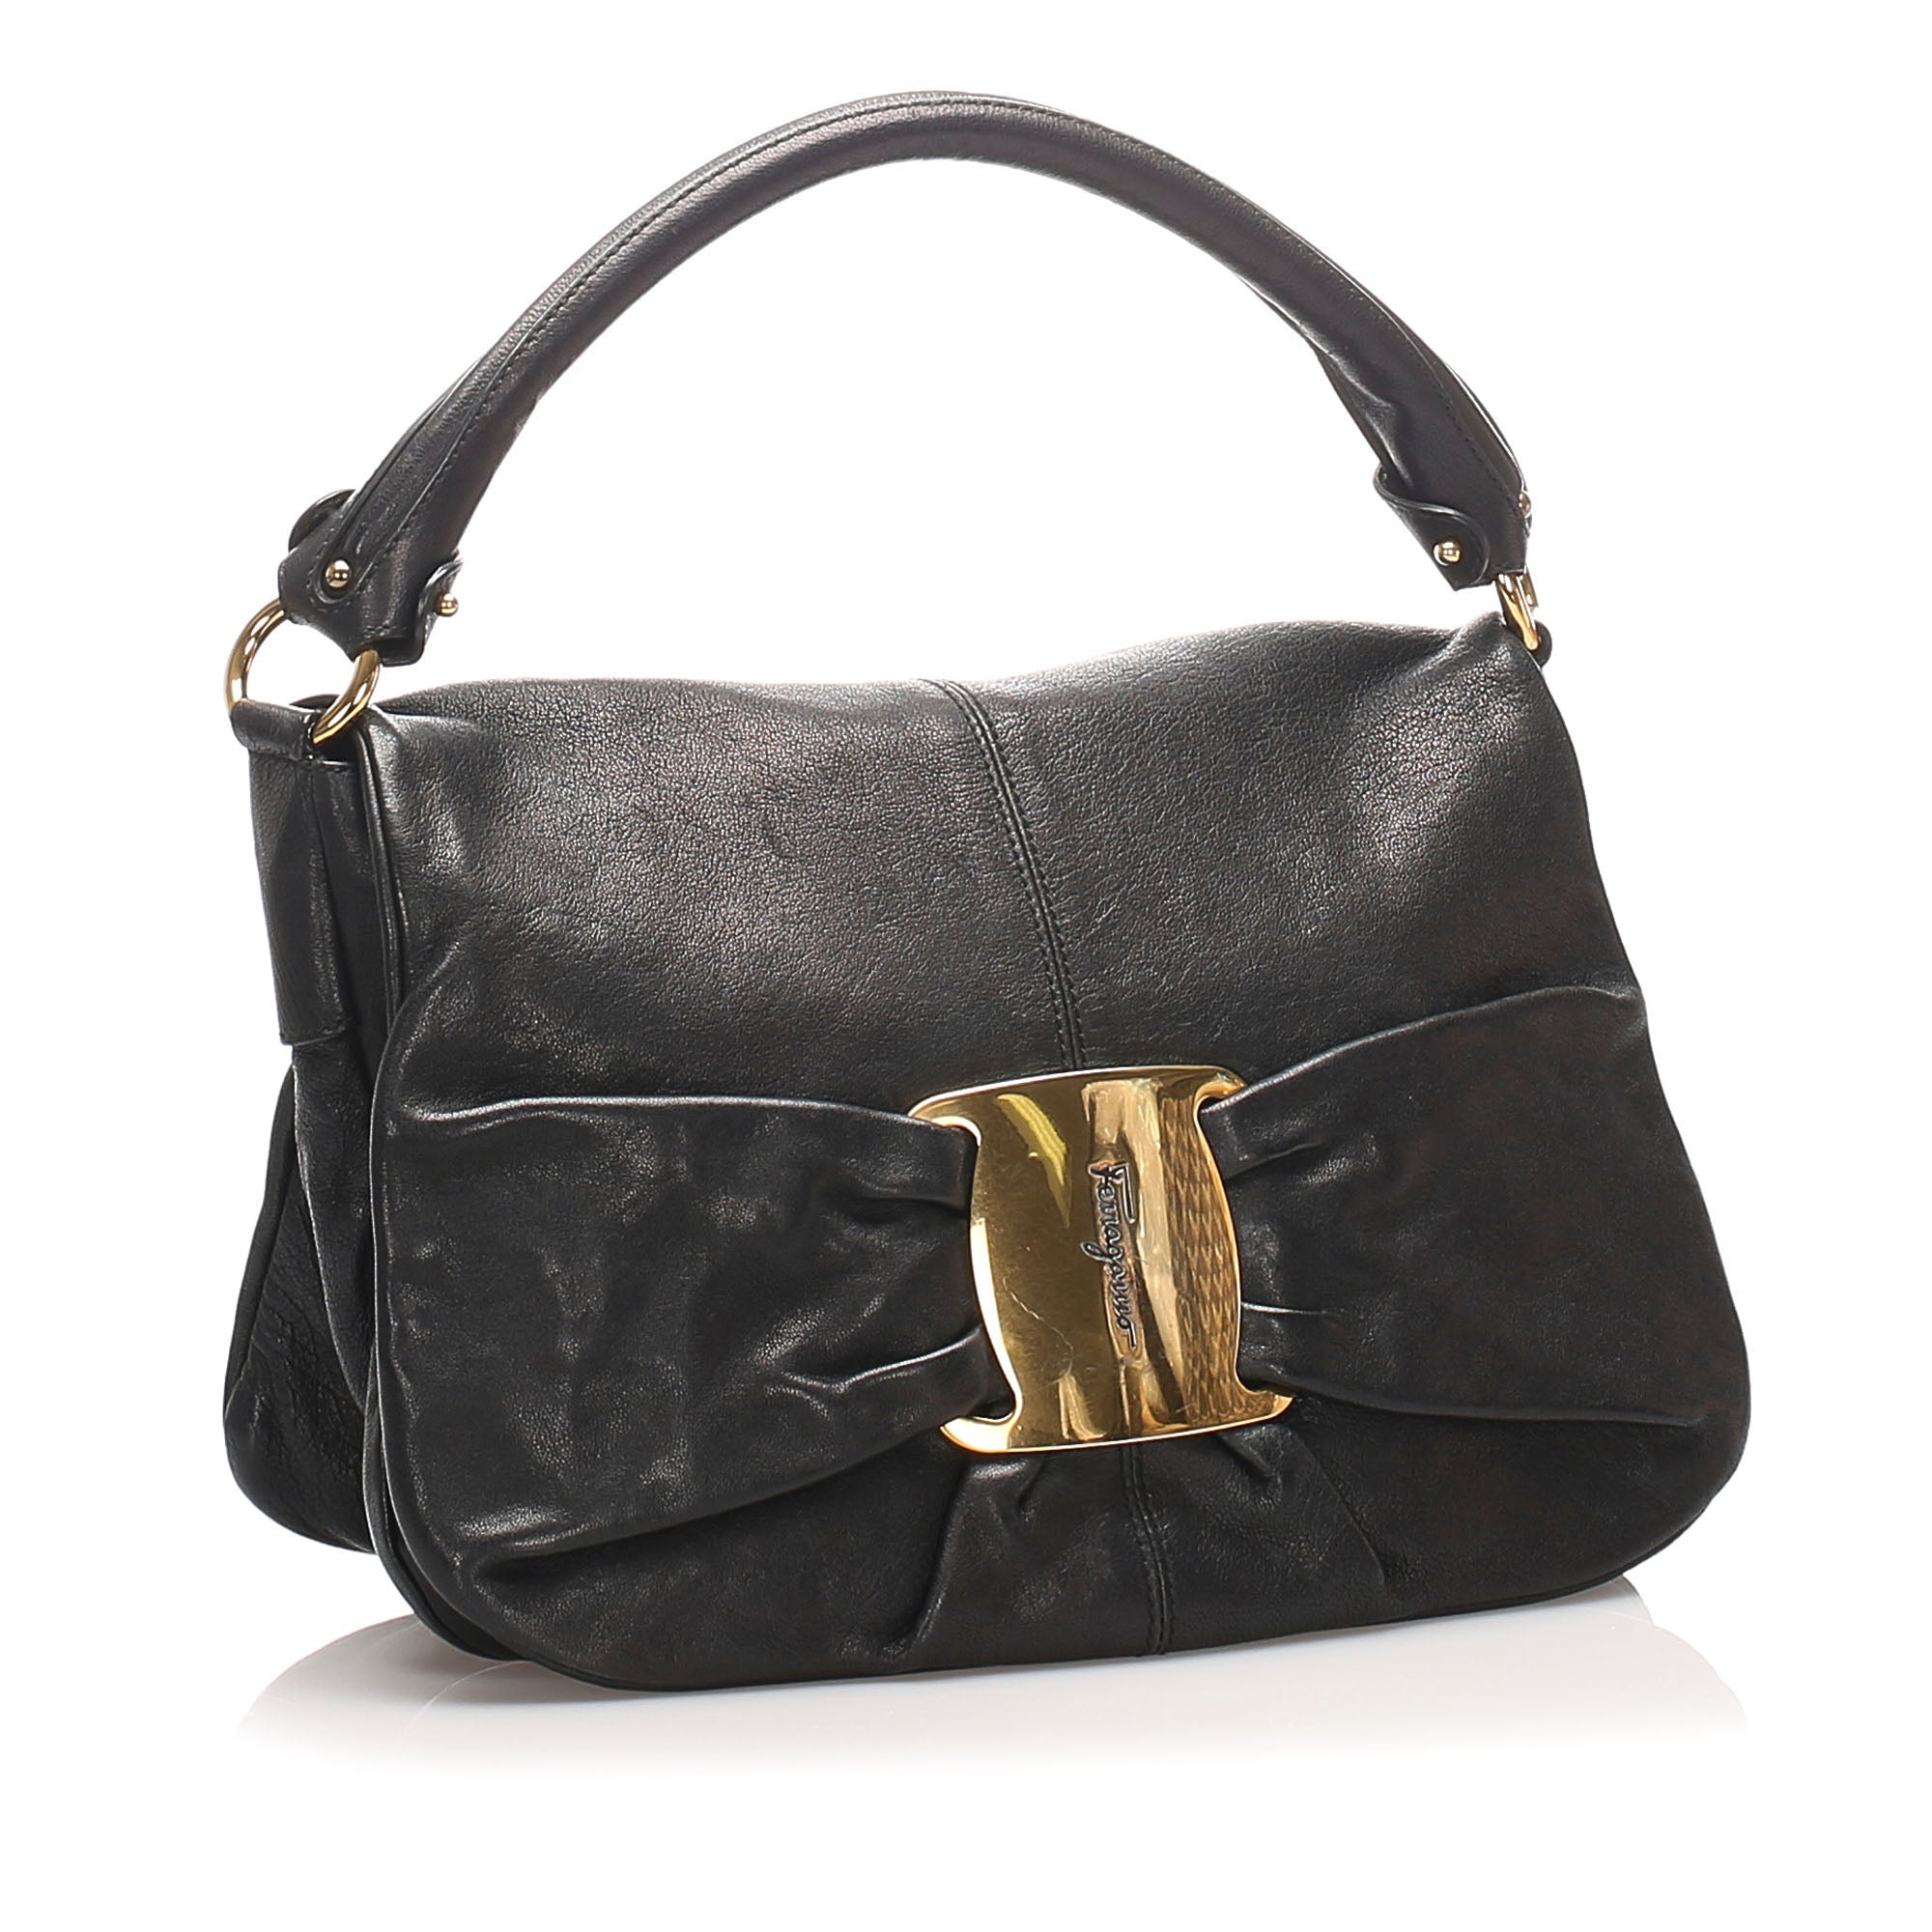 Ferragamo Black Vara Leather Shoulder Bag